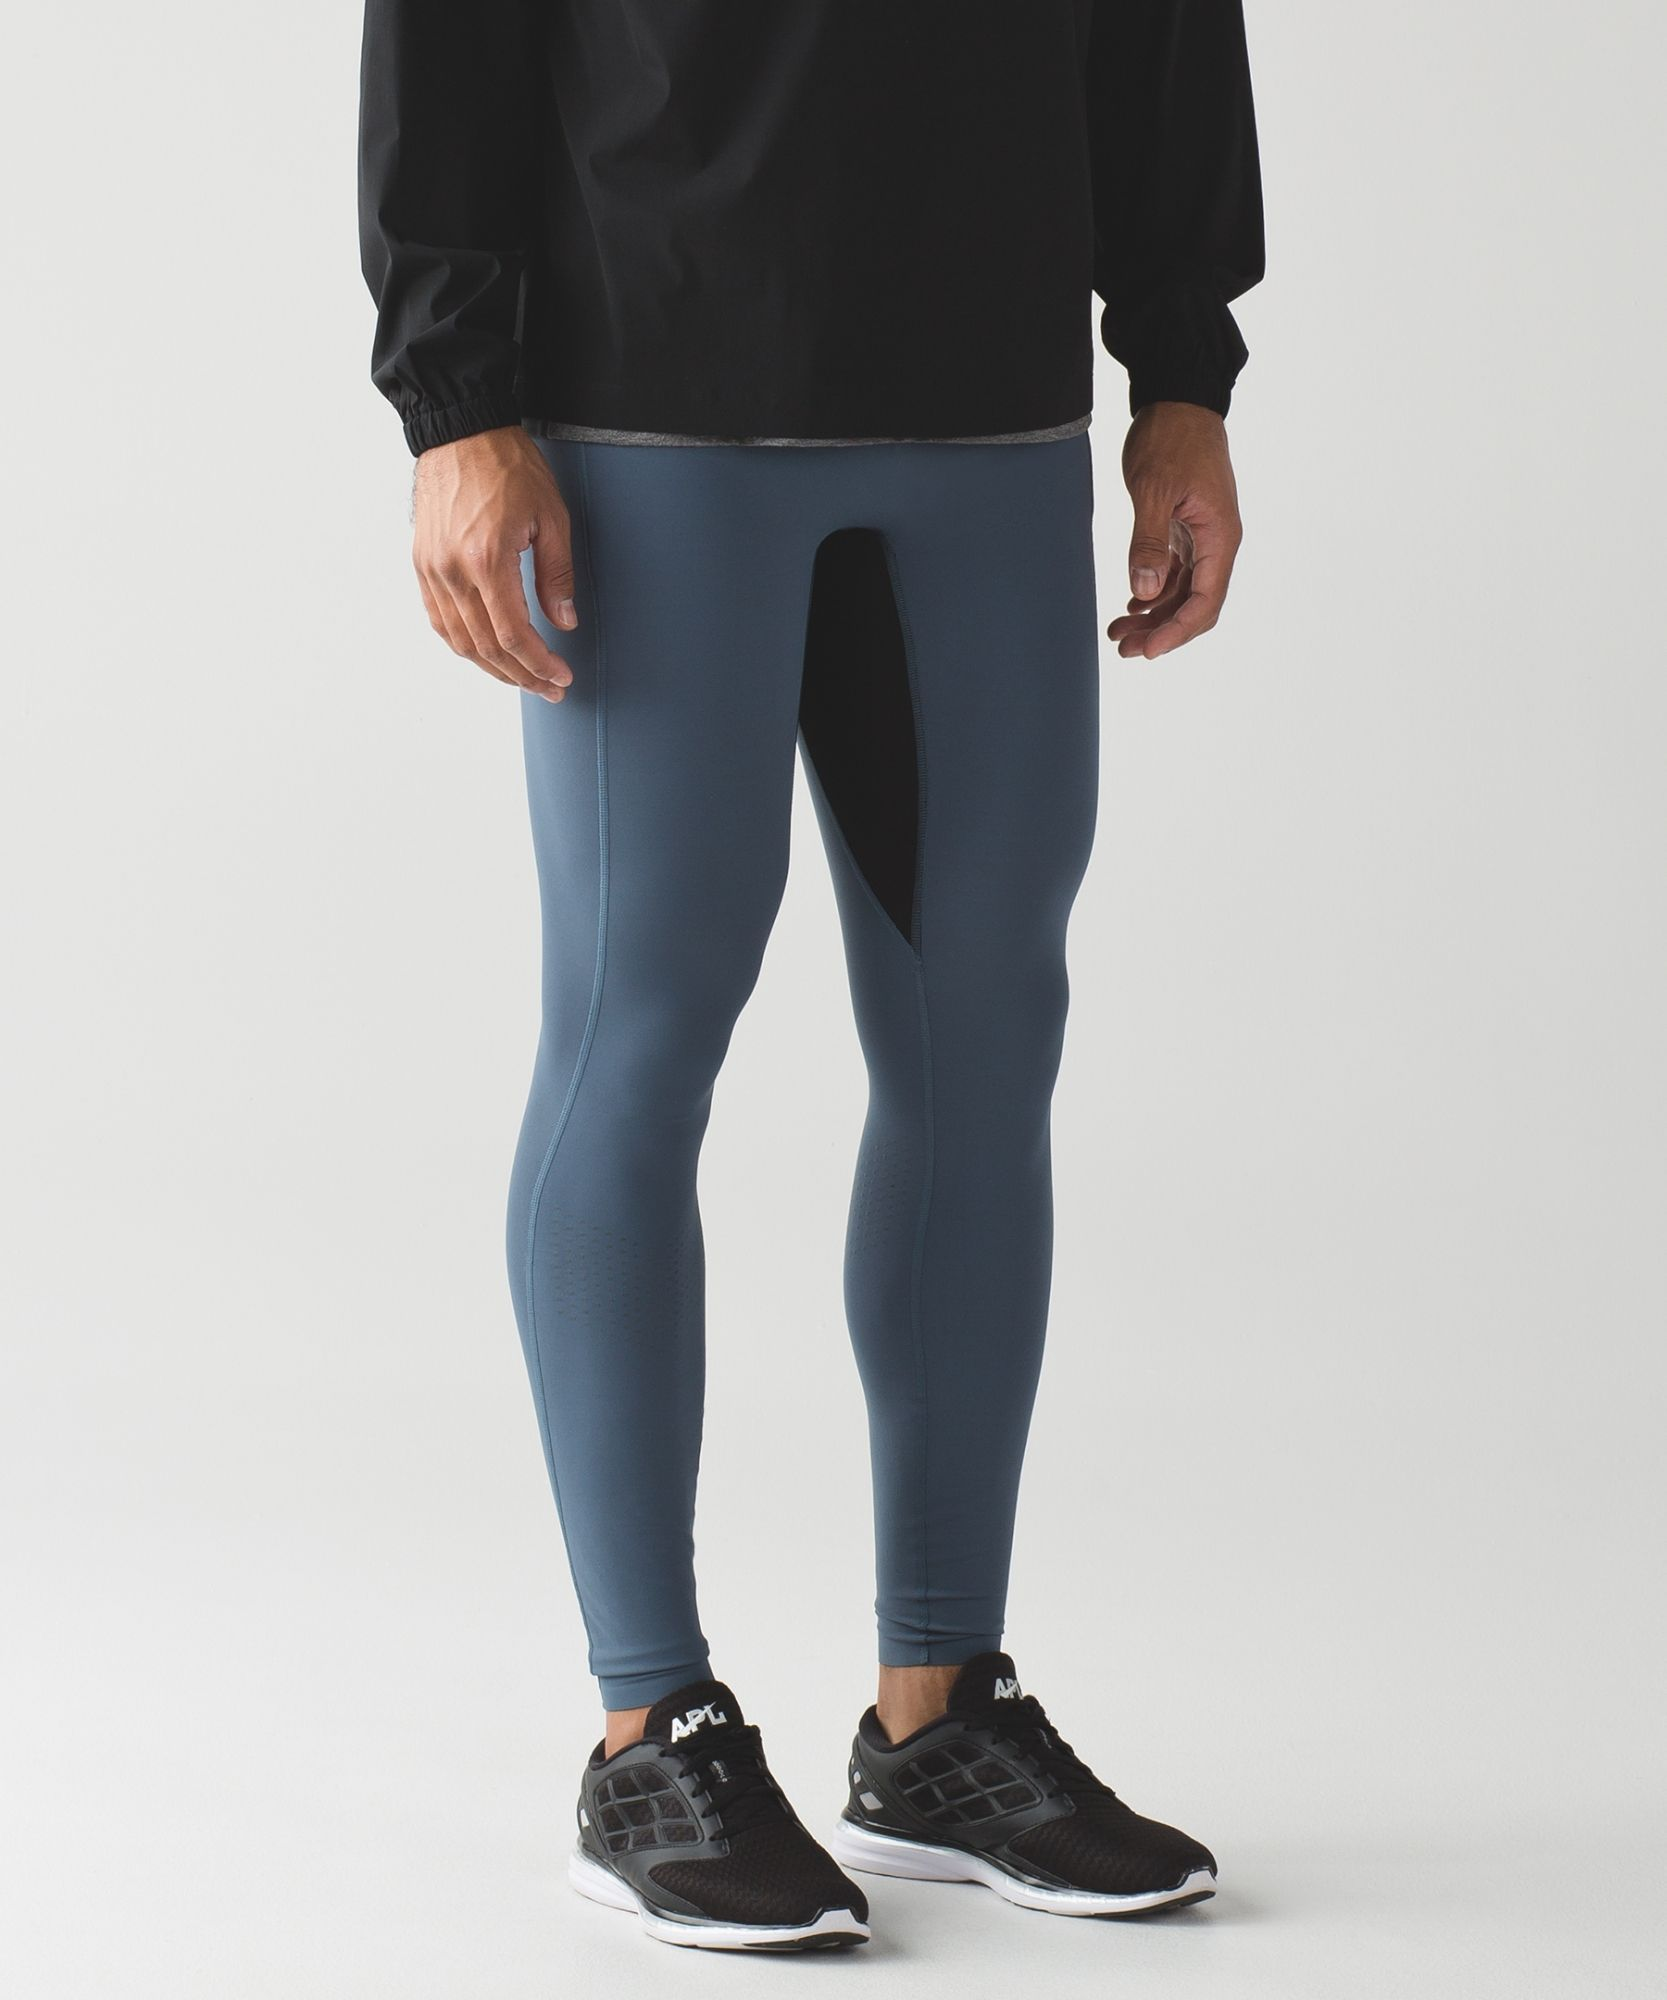 ada55379cfa6f Men's Running Tights - Surge Warm Tight - lululemon | Style | Mens ...